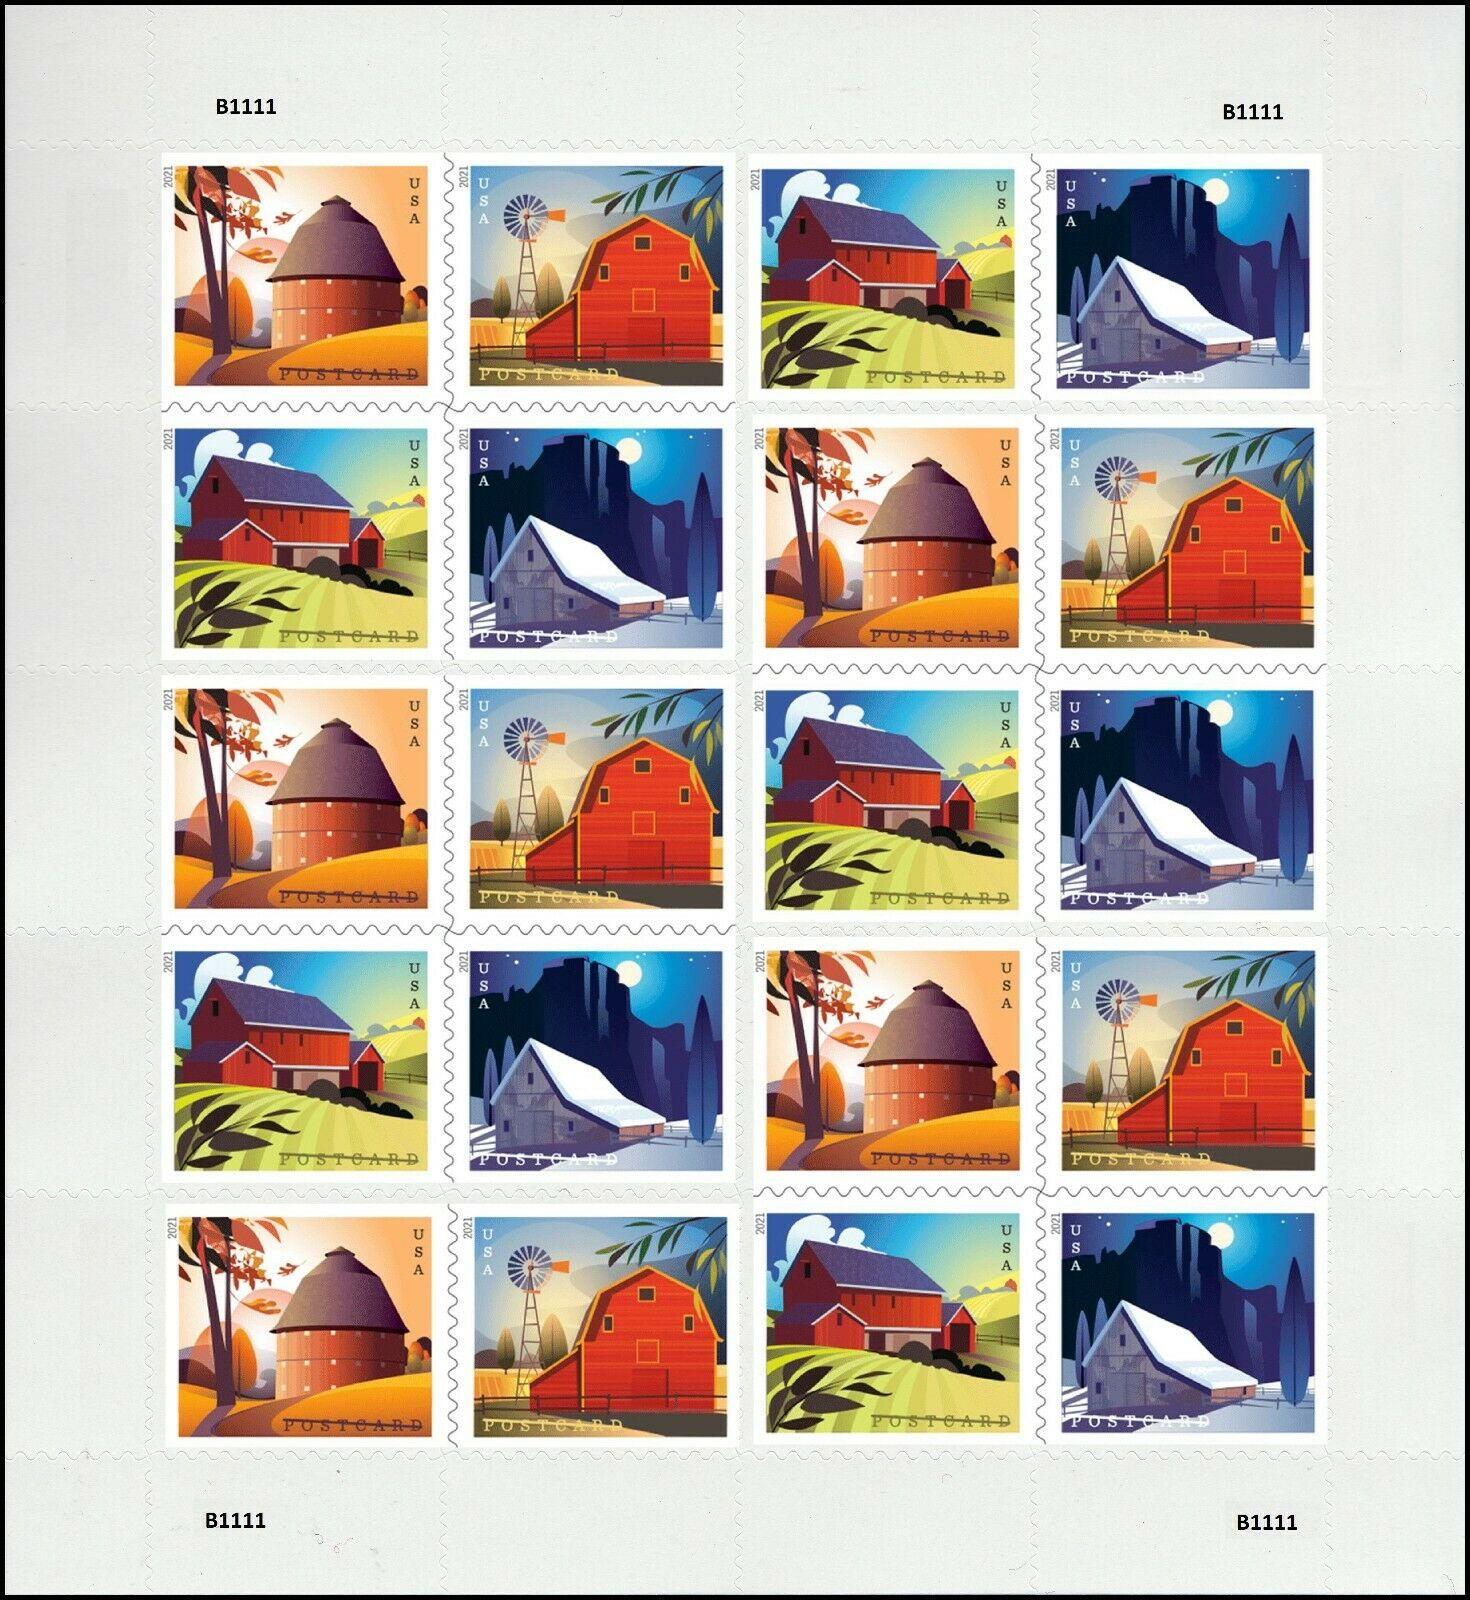 United States: Barns, 24 January 2021 (full sheet of 20 stamps)